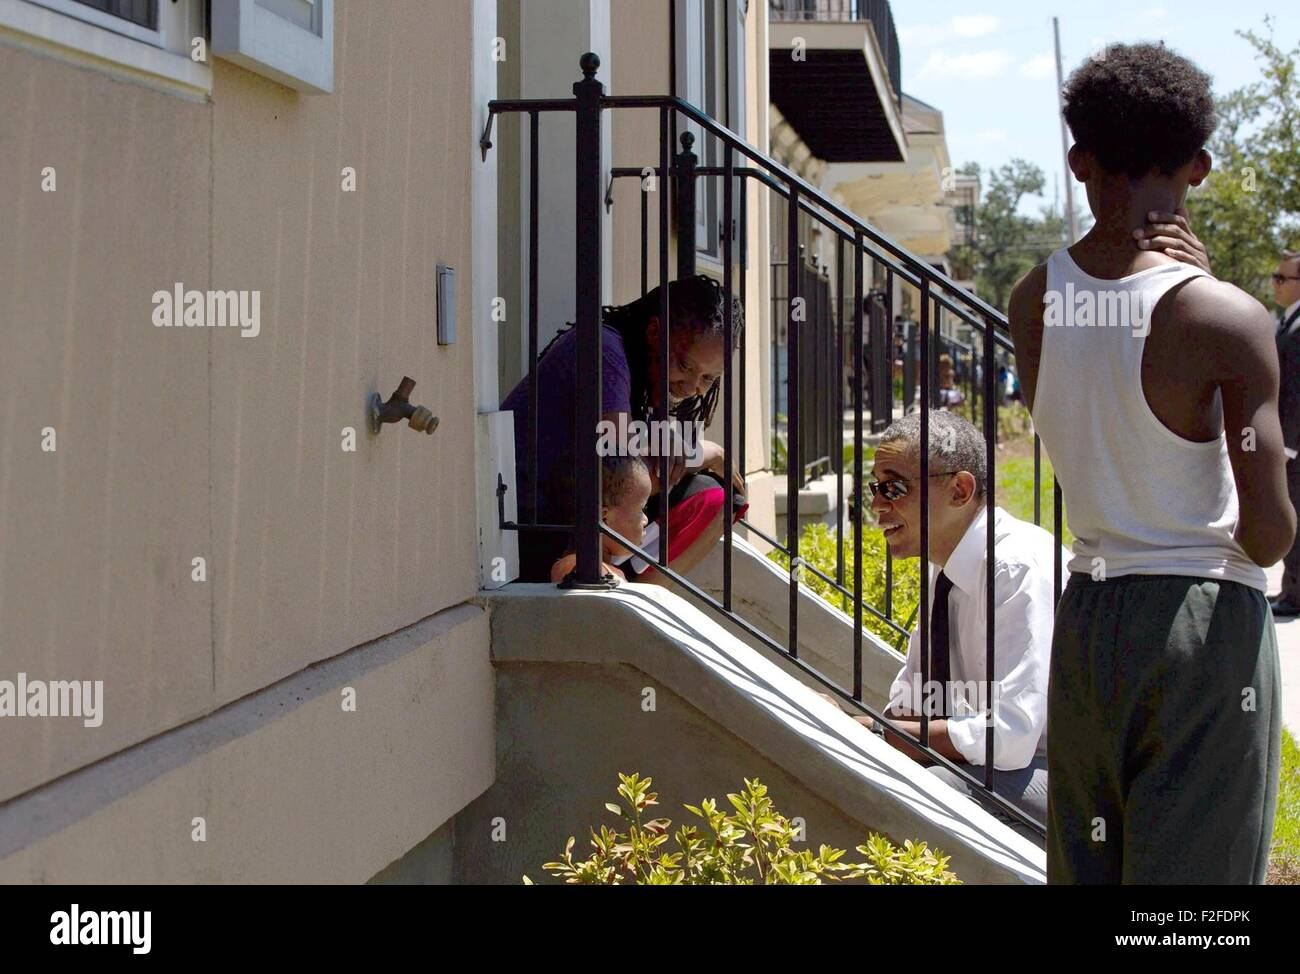 U.S. President Barack Obama speaks with residents in front of their homes during a walk through the Treme neighborhood - Stock Image